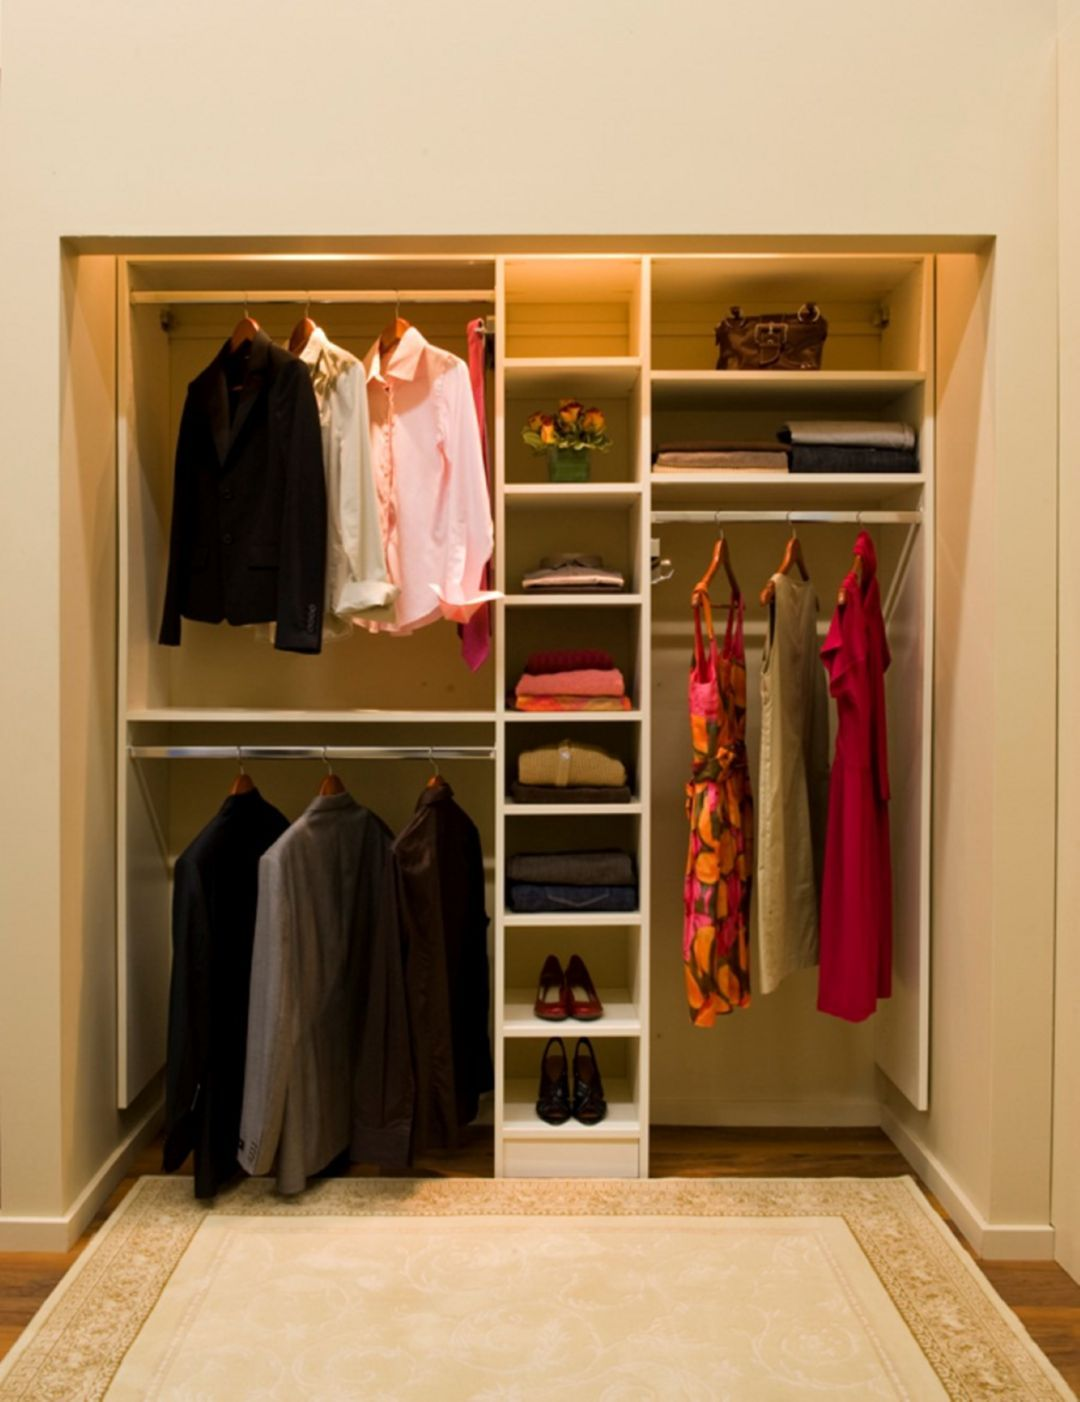 15 Awesome Closet Room Design Ideas For Your Bedroom Small